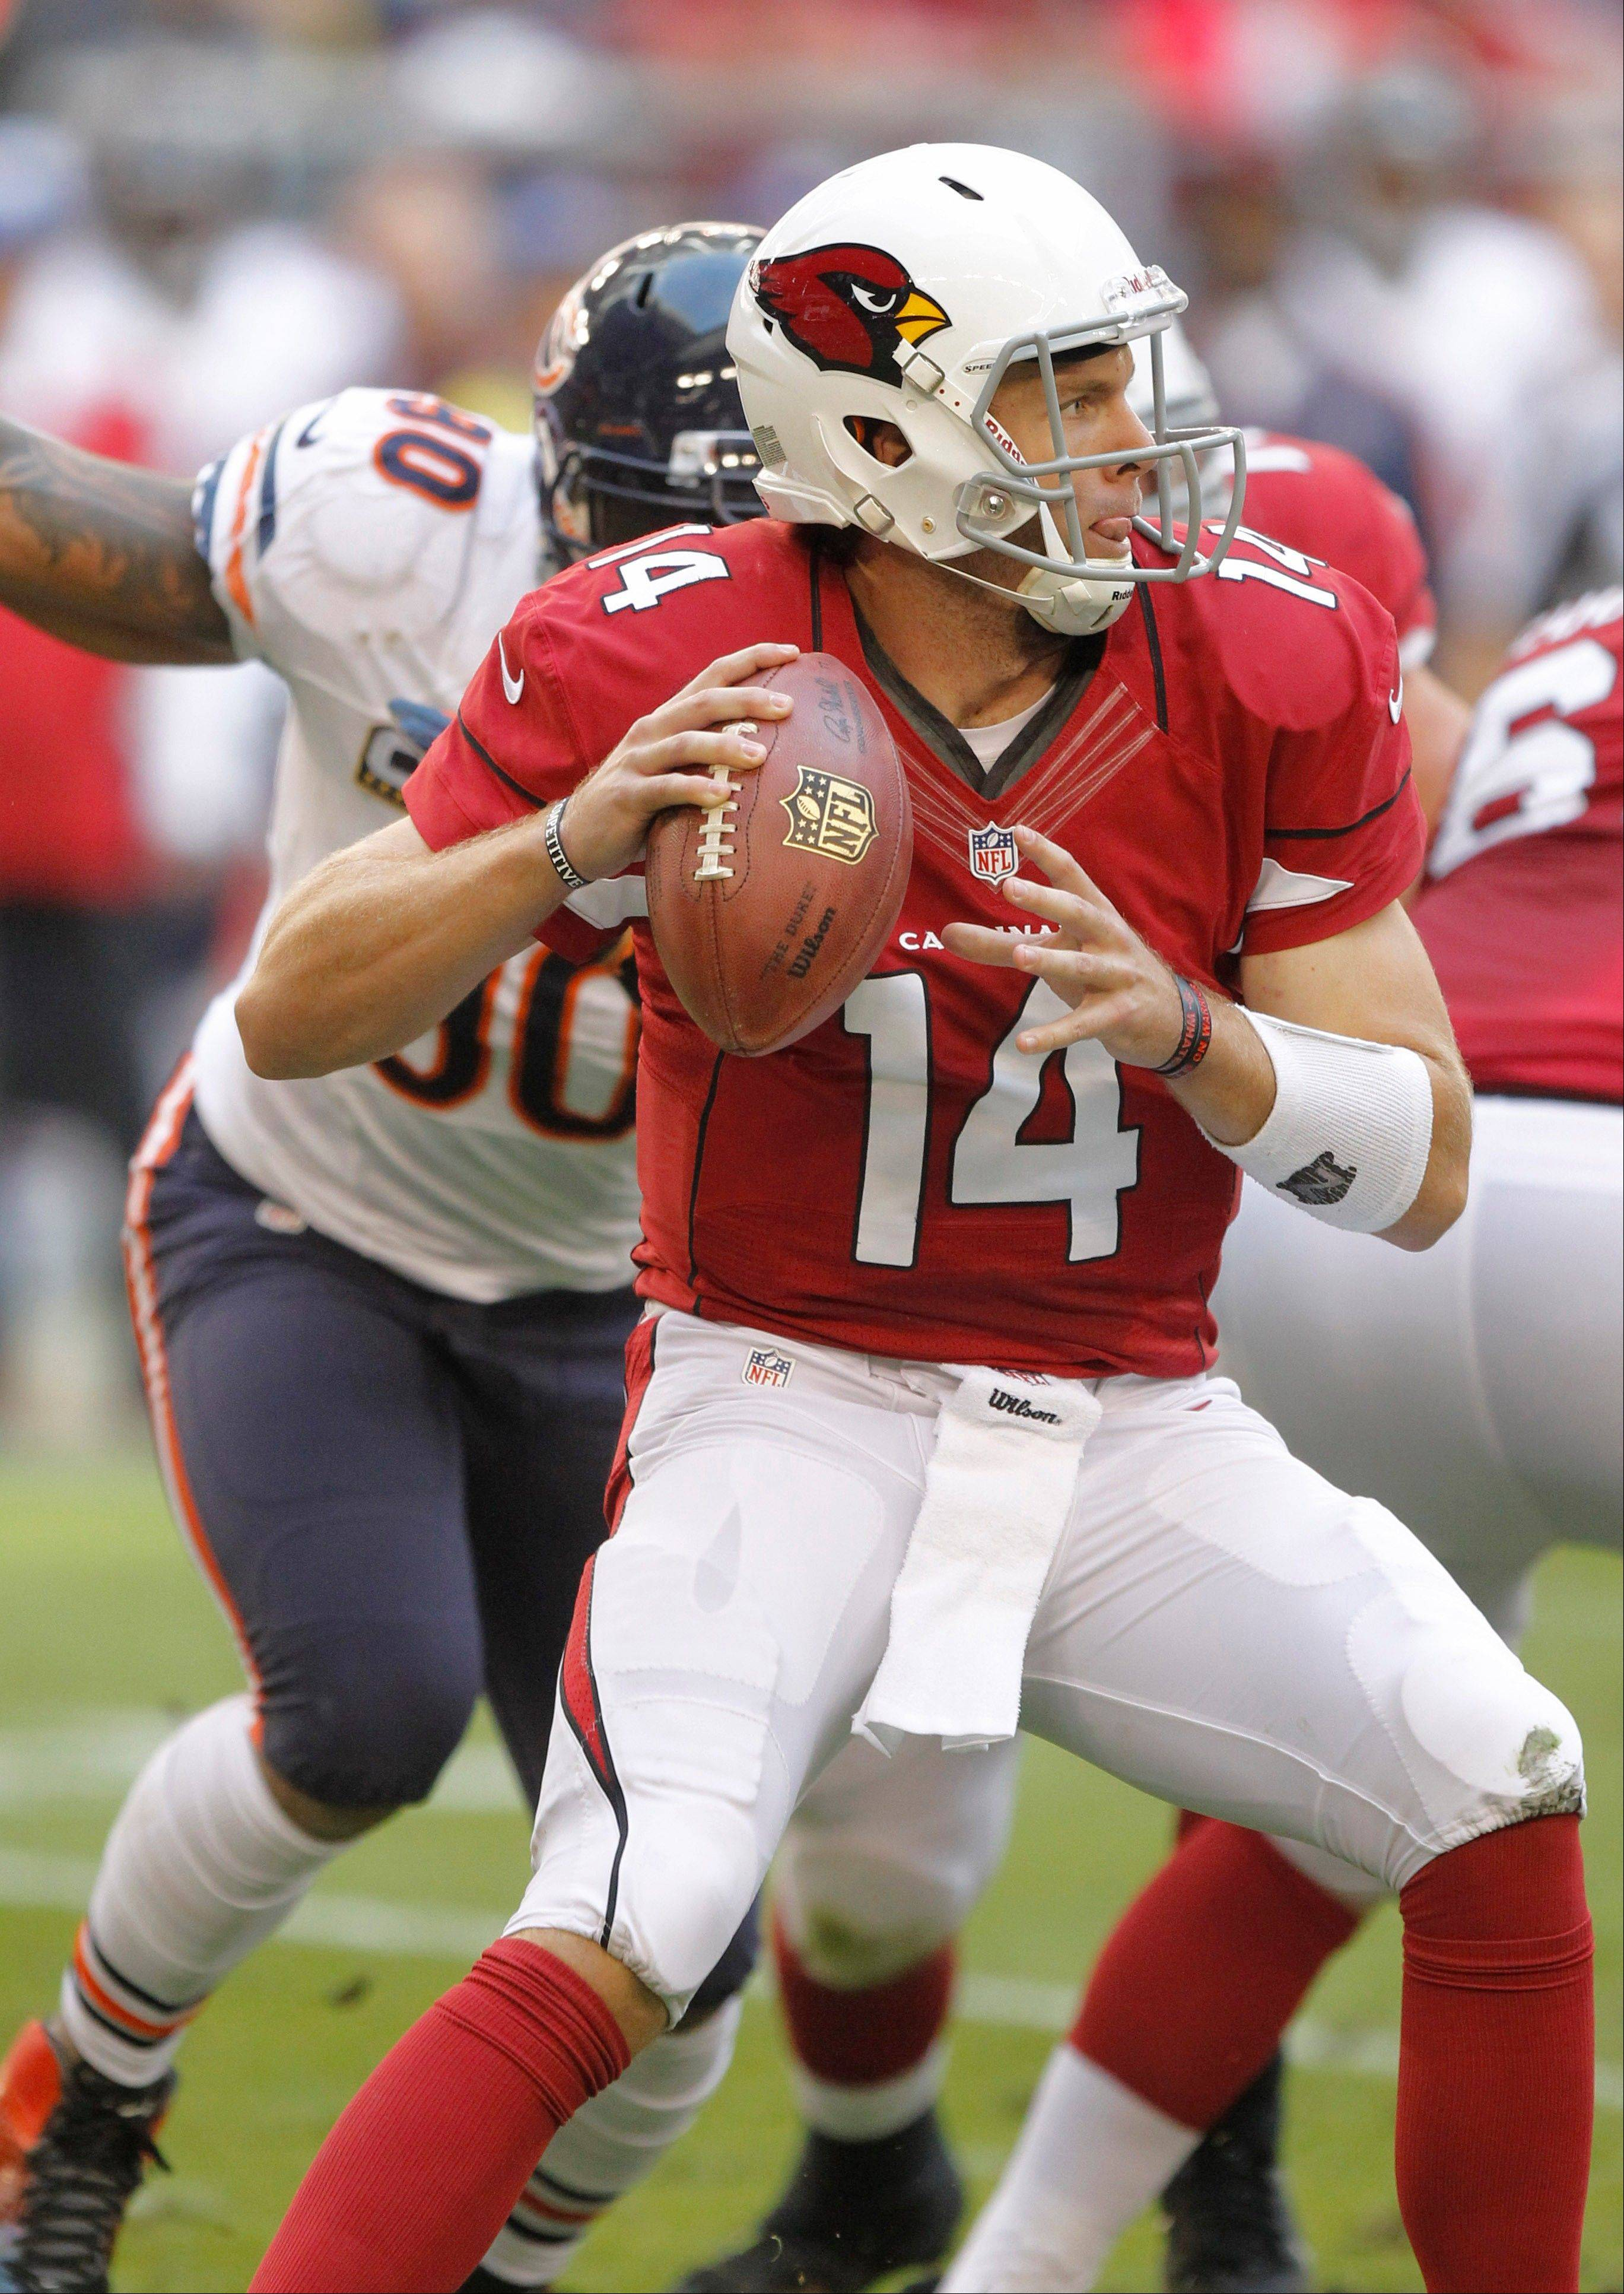 The Bears� Alonzo Spellman closes in on Ryan Lindley as the Cardinals� quarterback looks for an open receiver.